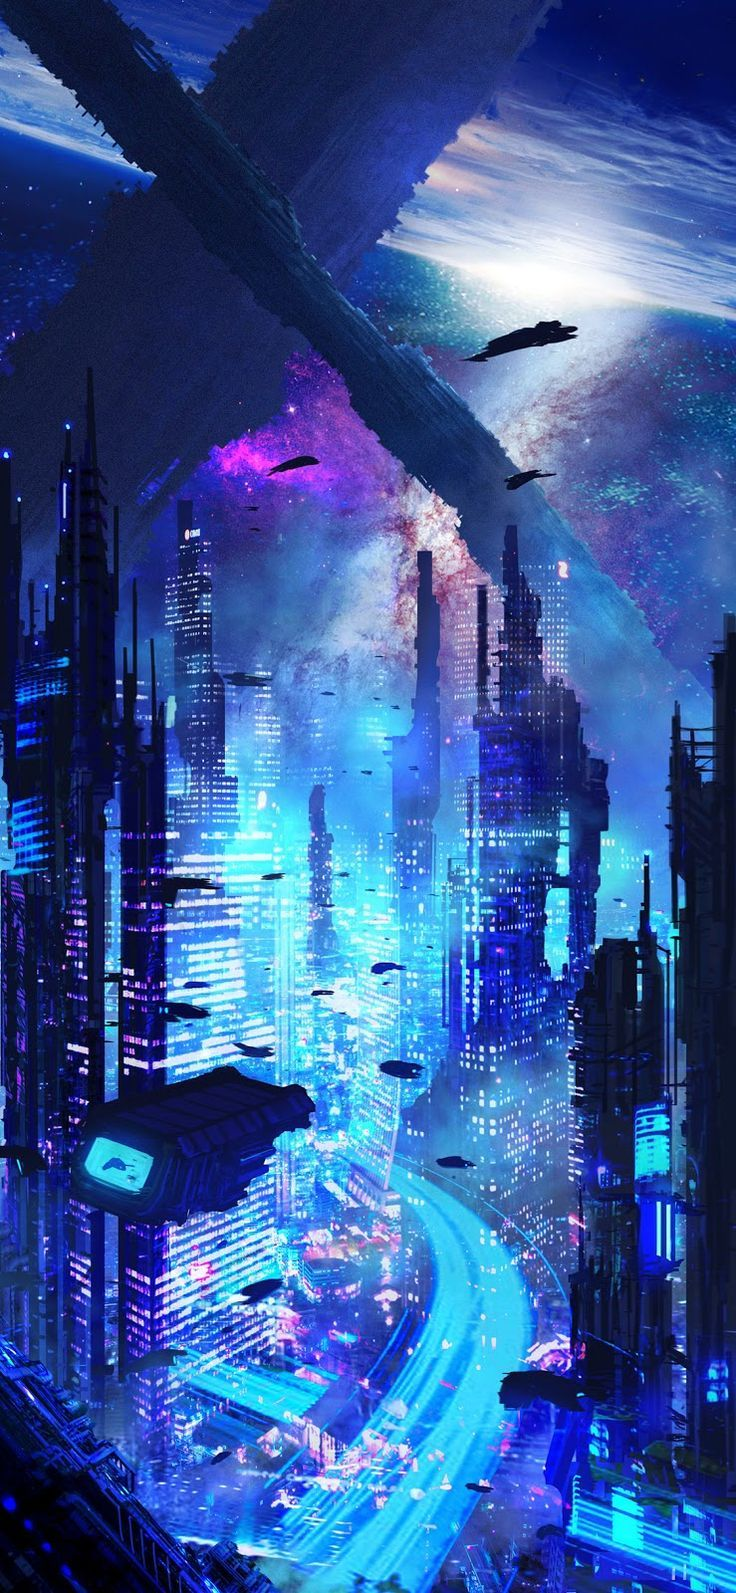 Fictional City Iphone X City Fictional Iphone Wallpapers 4k Free Iphone Mobile Games Cyberpunk City Futuristic City City Art